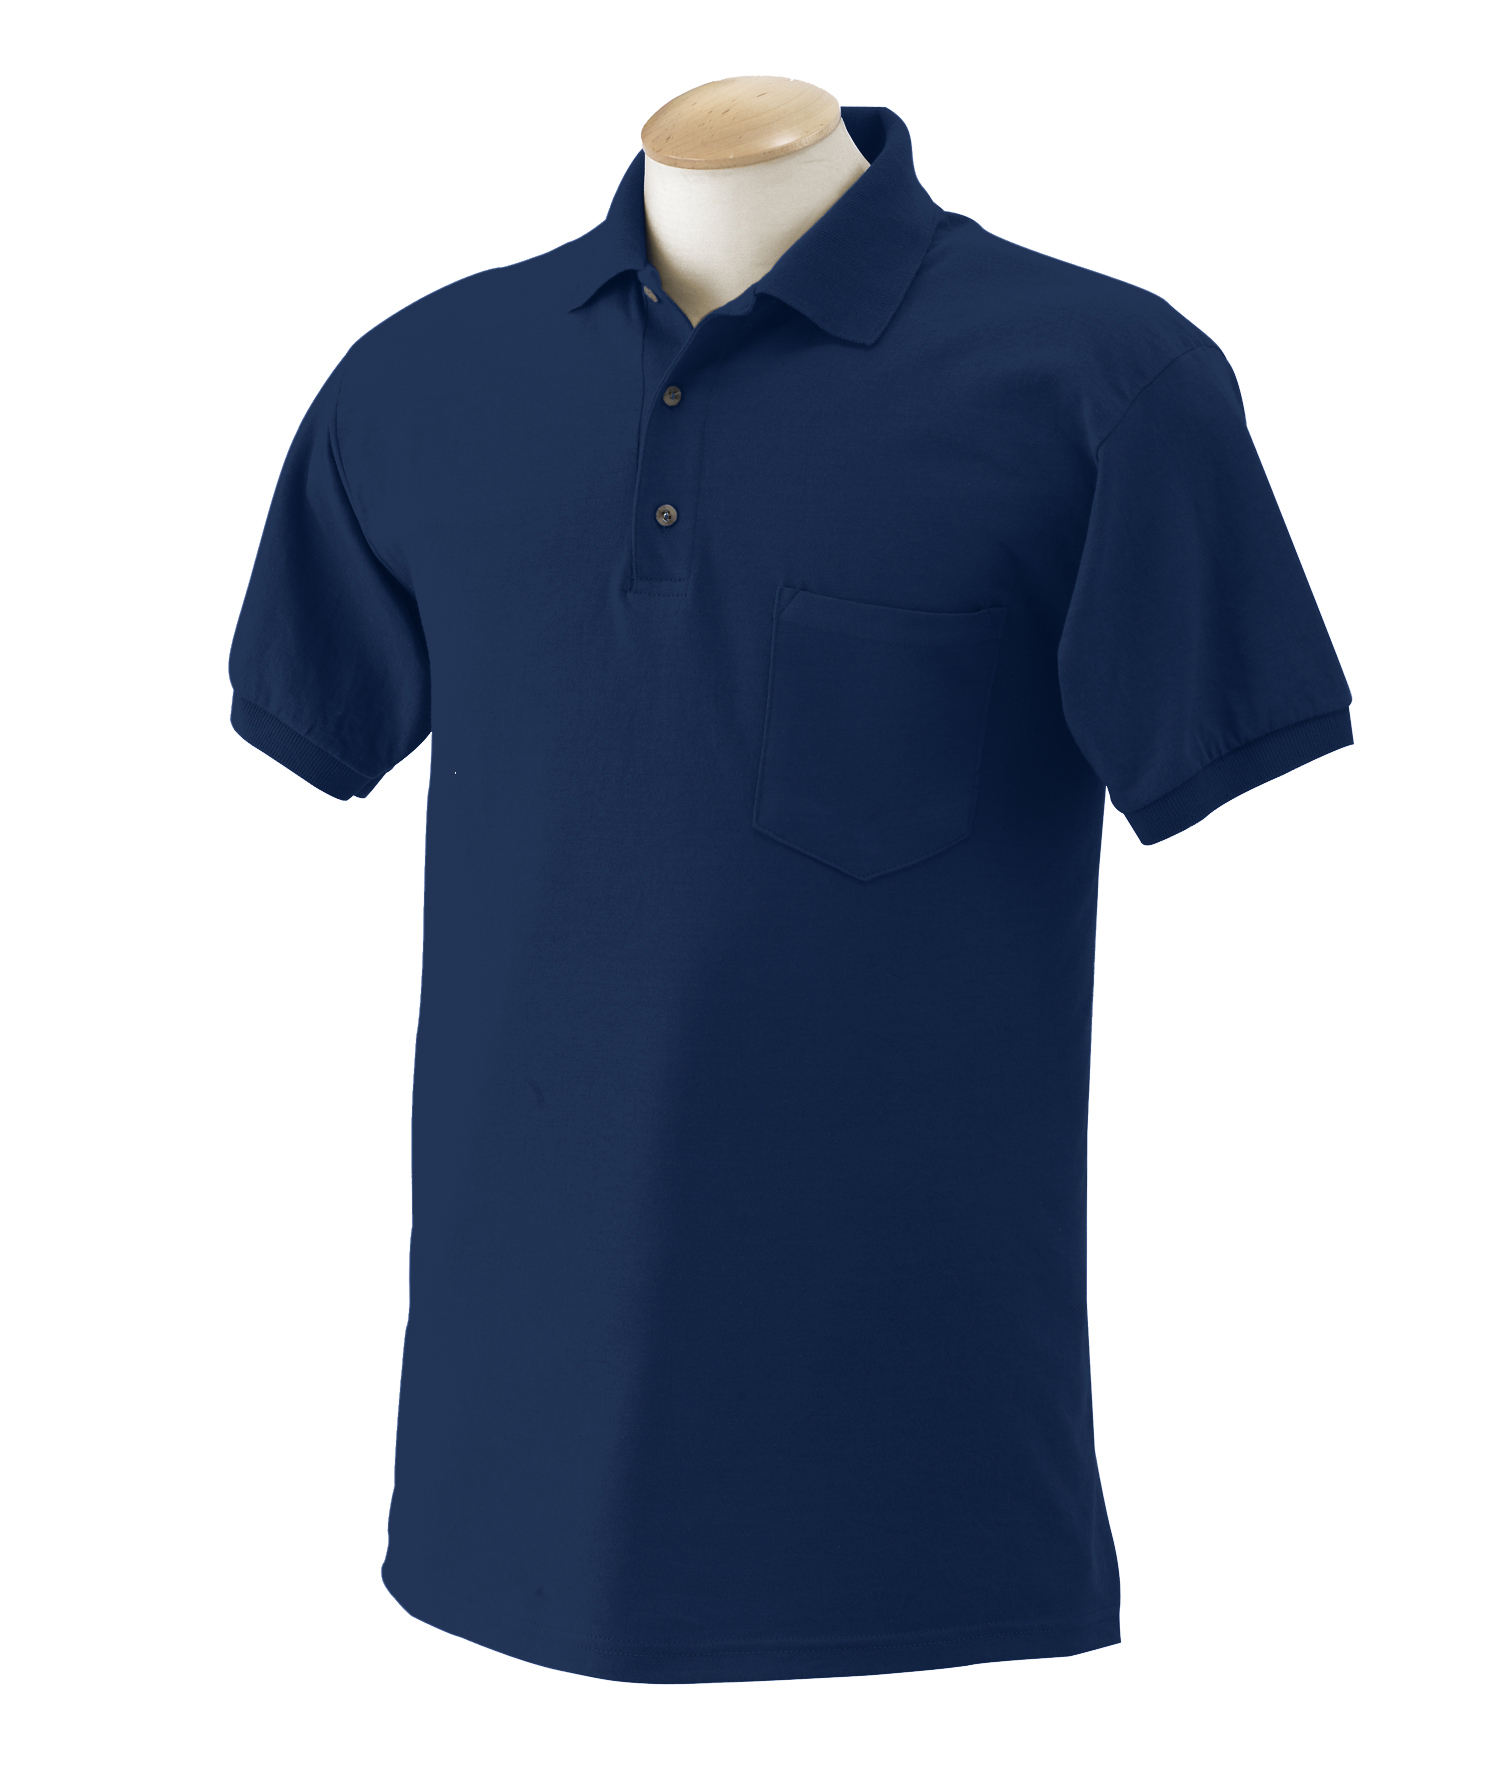 Gildan G890 5.6 oz. DryBlend50/50 Jersey Polo with Pocket